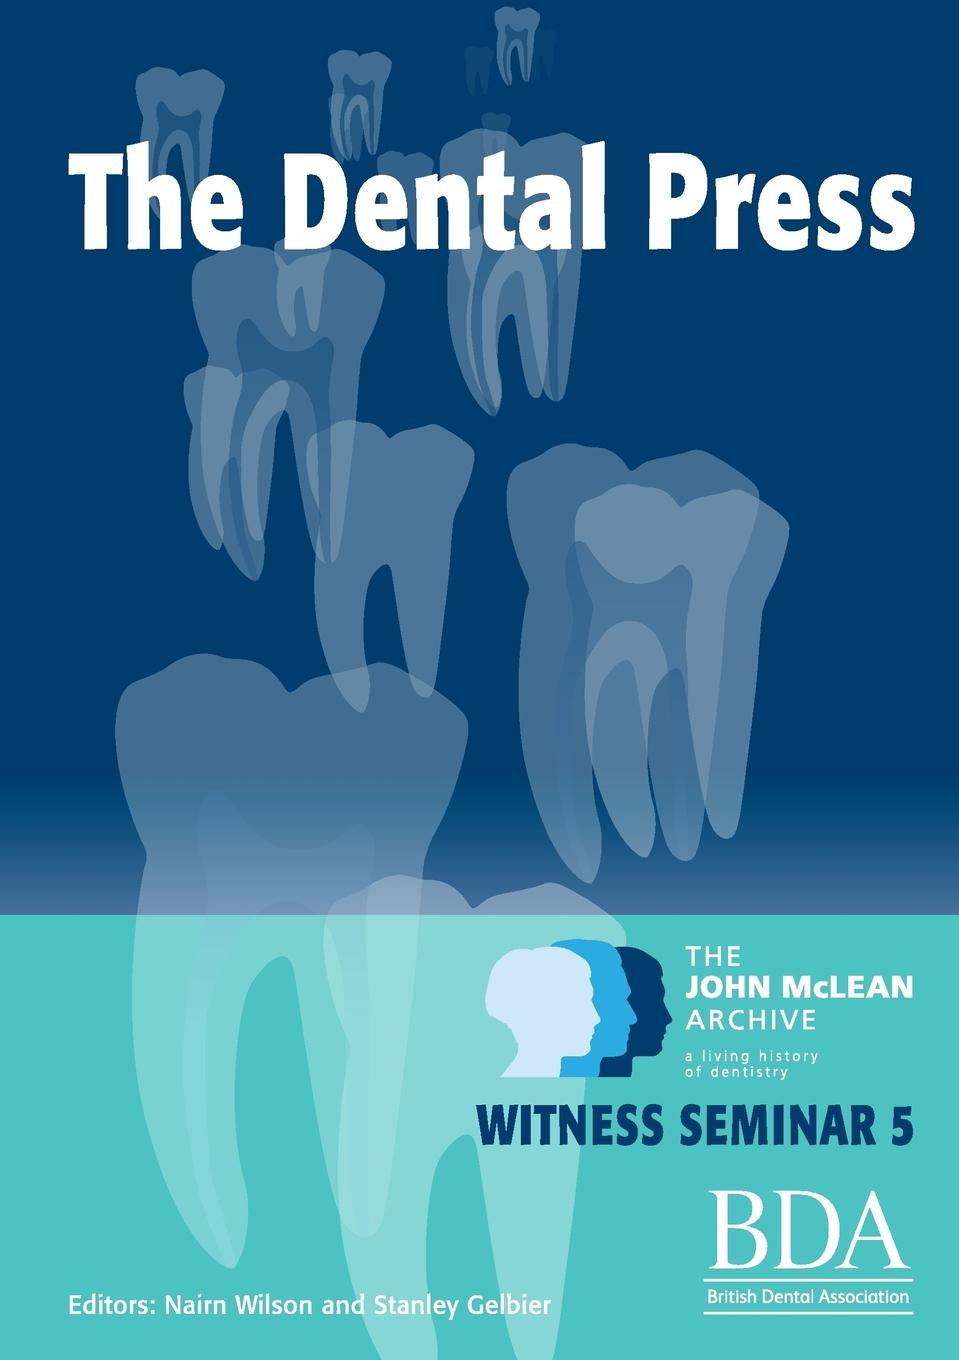 Nairn Wilson, Stanley Gelbier The Dental Press - The John McLean Archive a Living History of Dentistry Witness Seminar 5 william abbatt a history of the united states and its people from their earliest records to the present time volume 6